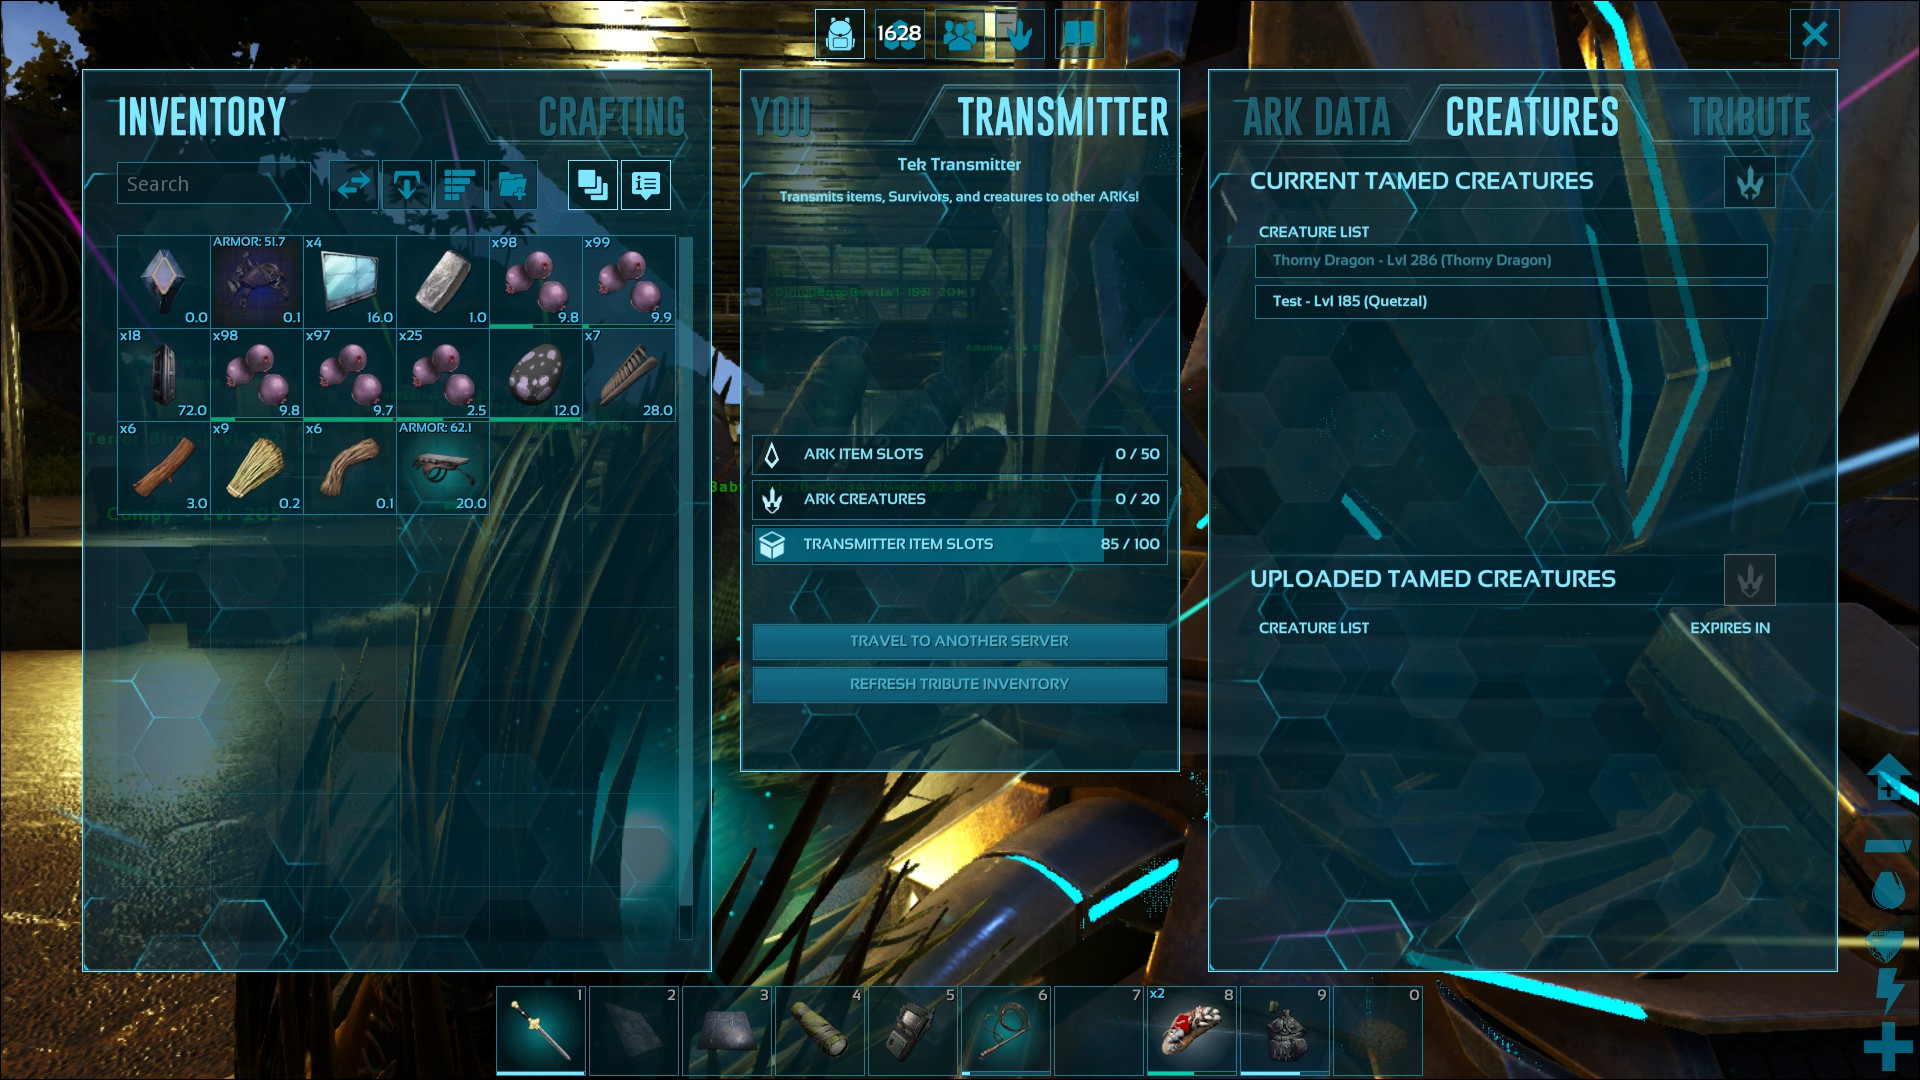 Cant reupload tames - Bug Reports & Support - ARK - Official